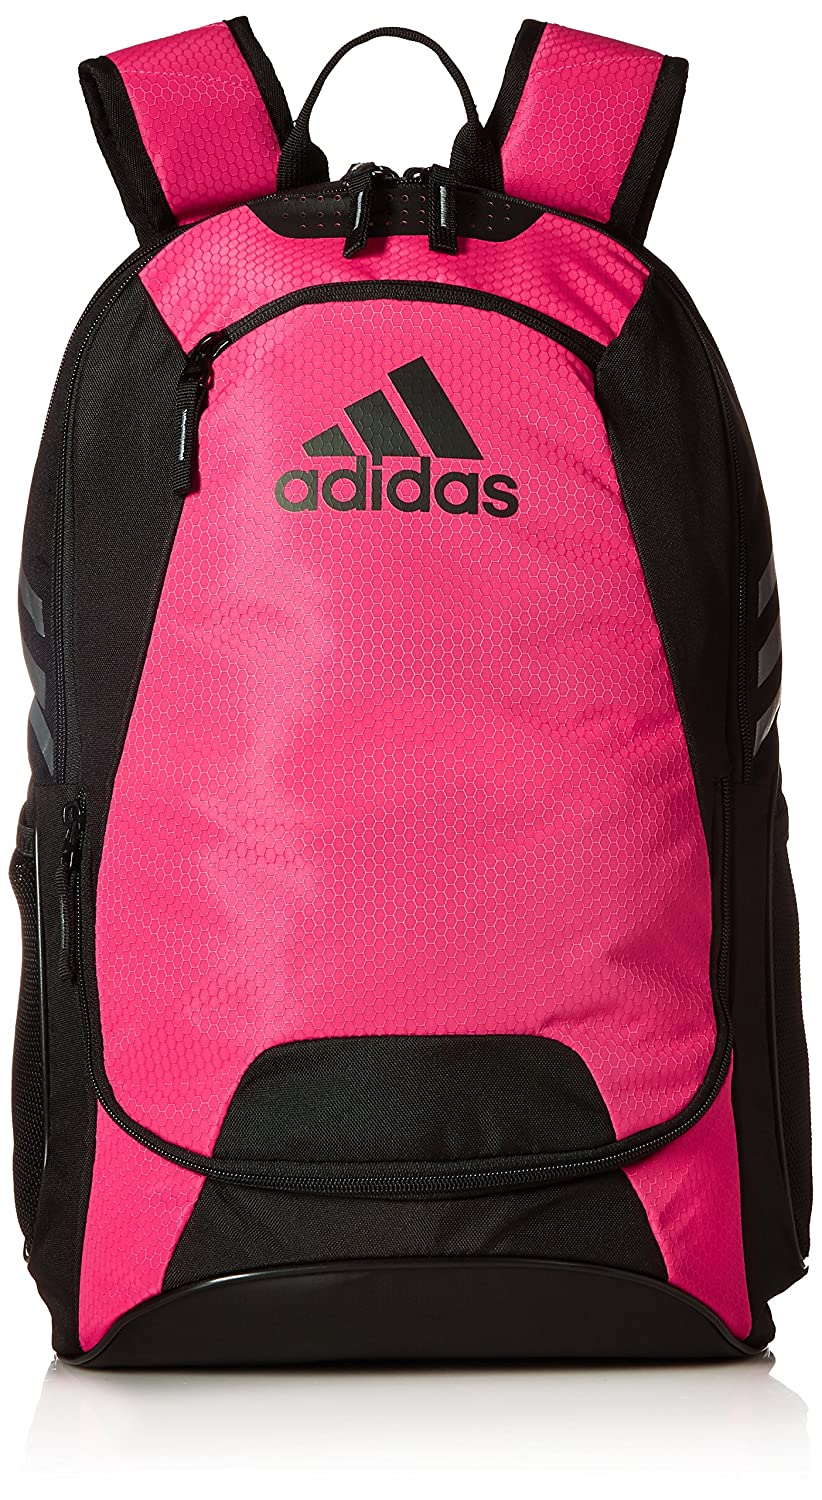 Adidas Stadium IIバックパック B073JS11S6 One Size|Shock Pink Shock Pink One Size